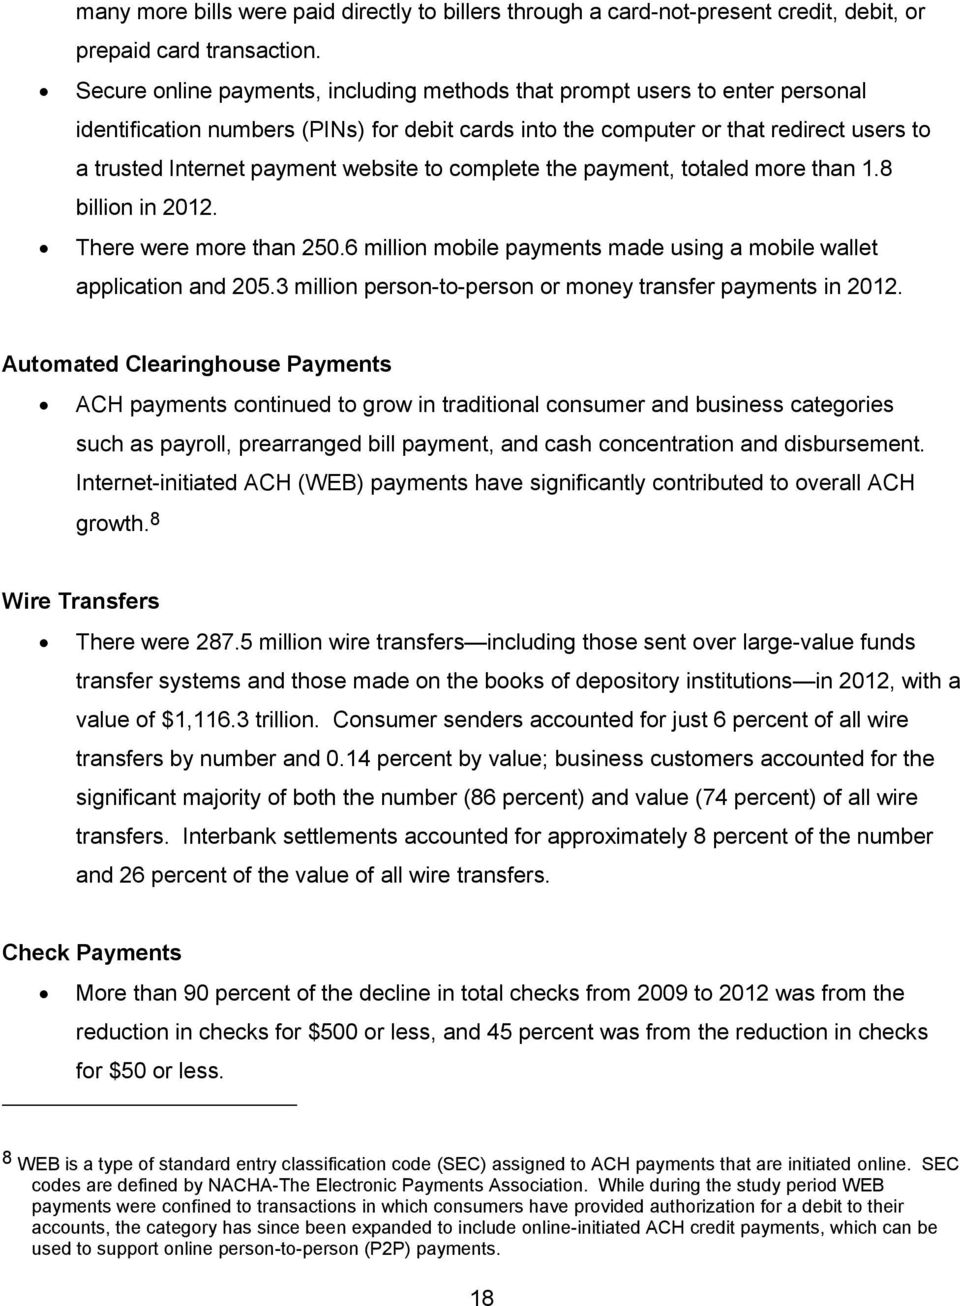 website to complete the payment, totaled more than 1.8 billion in 2012. There were more than 250.6 million mobile payments made using a mobile wallet application and 205.